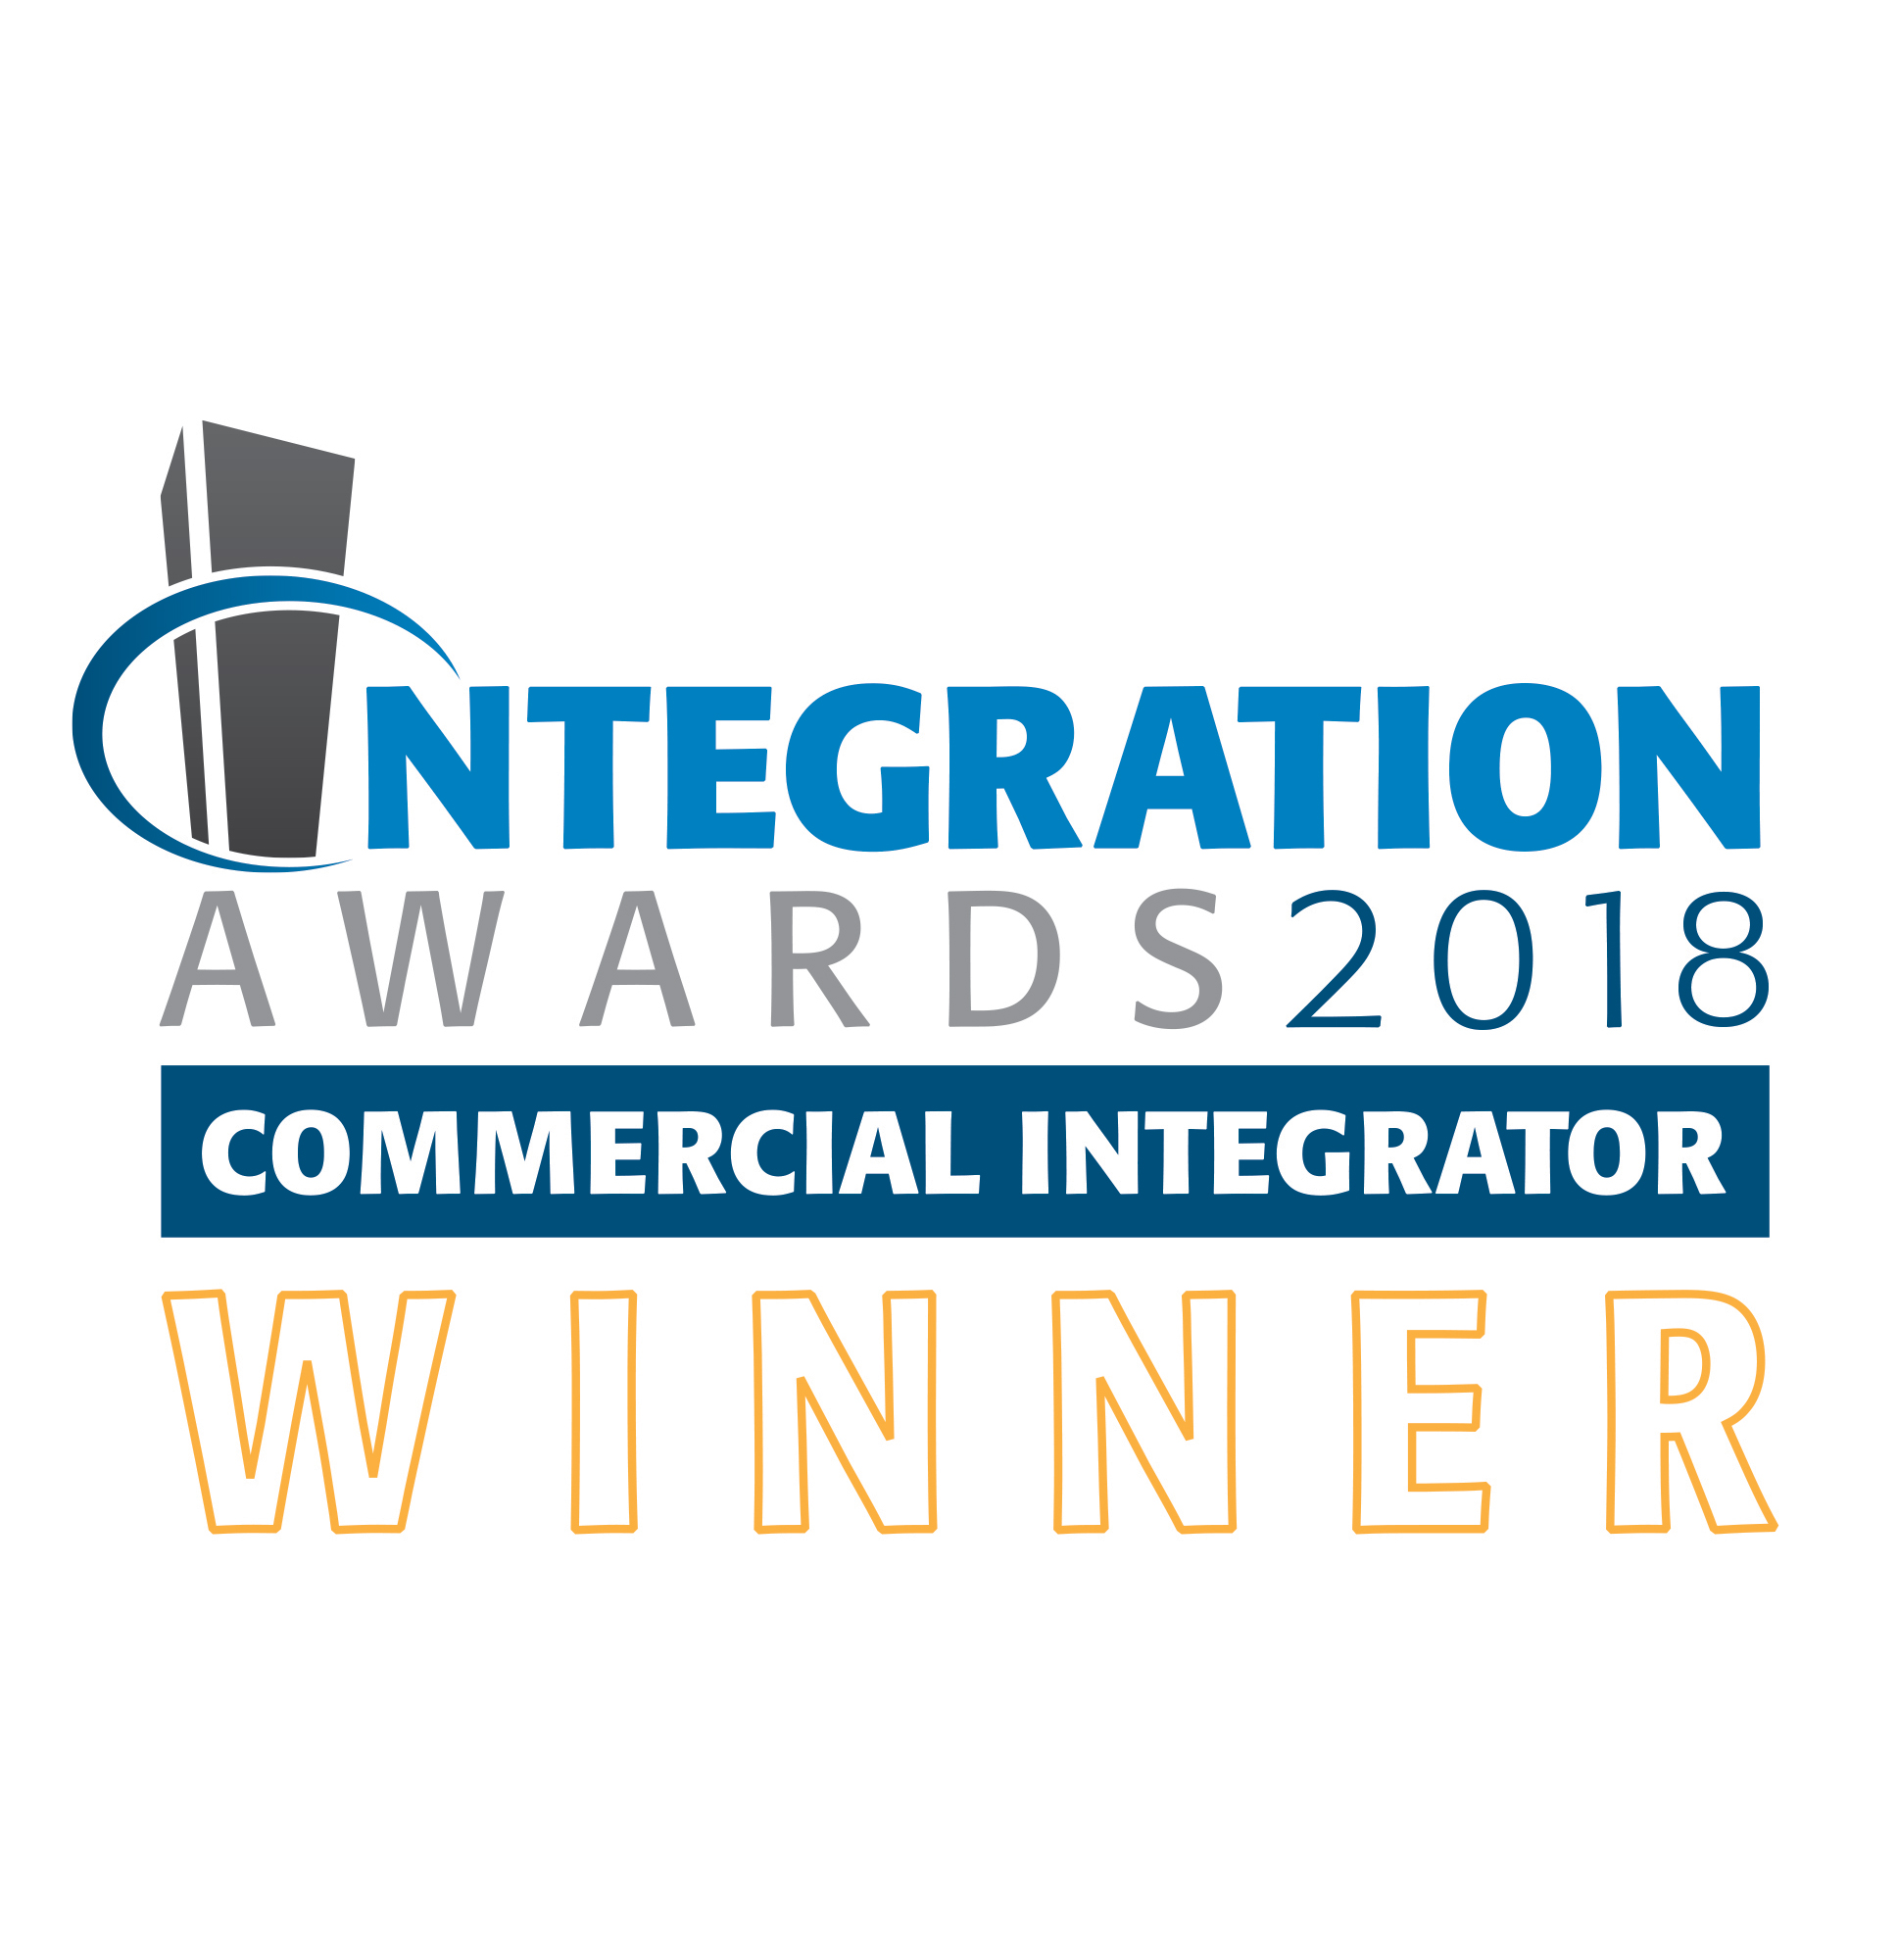 Commercial Integrator Integration Awards